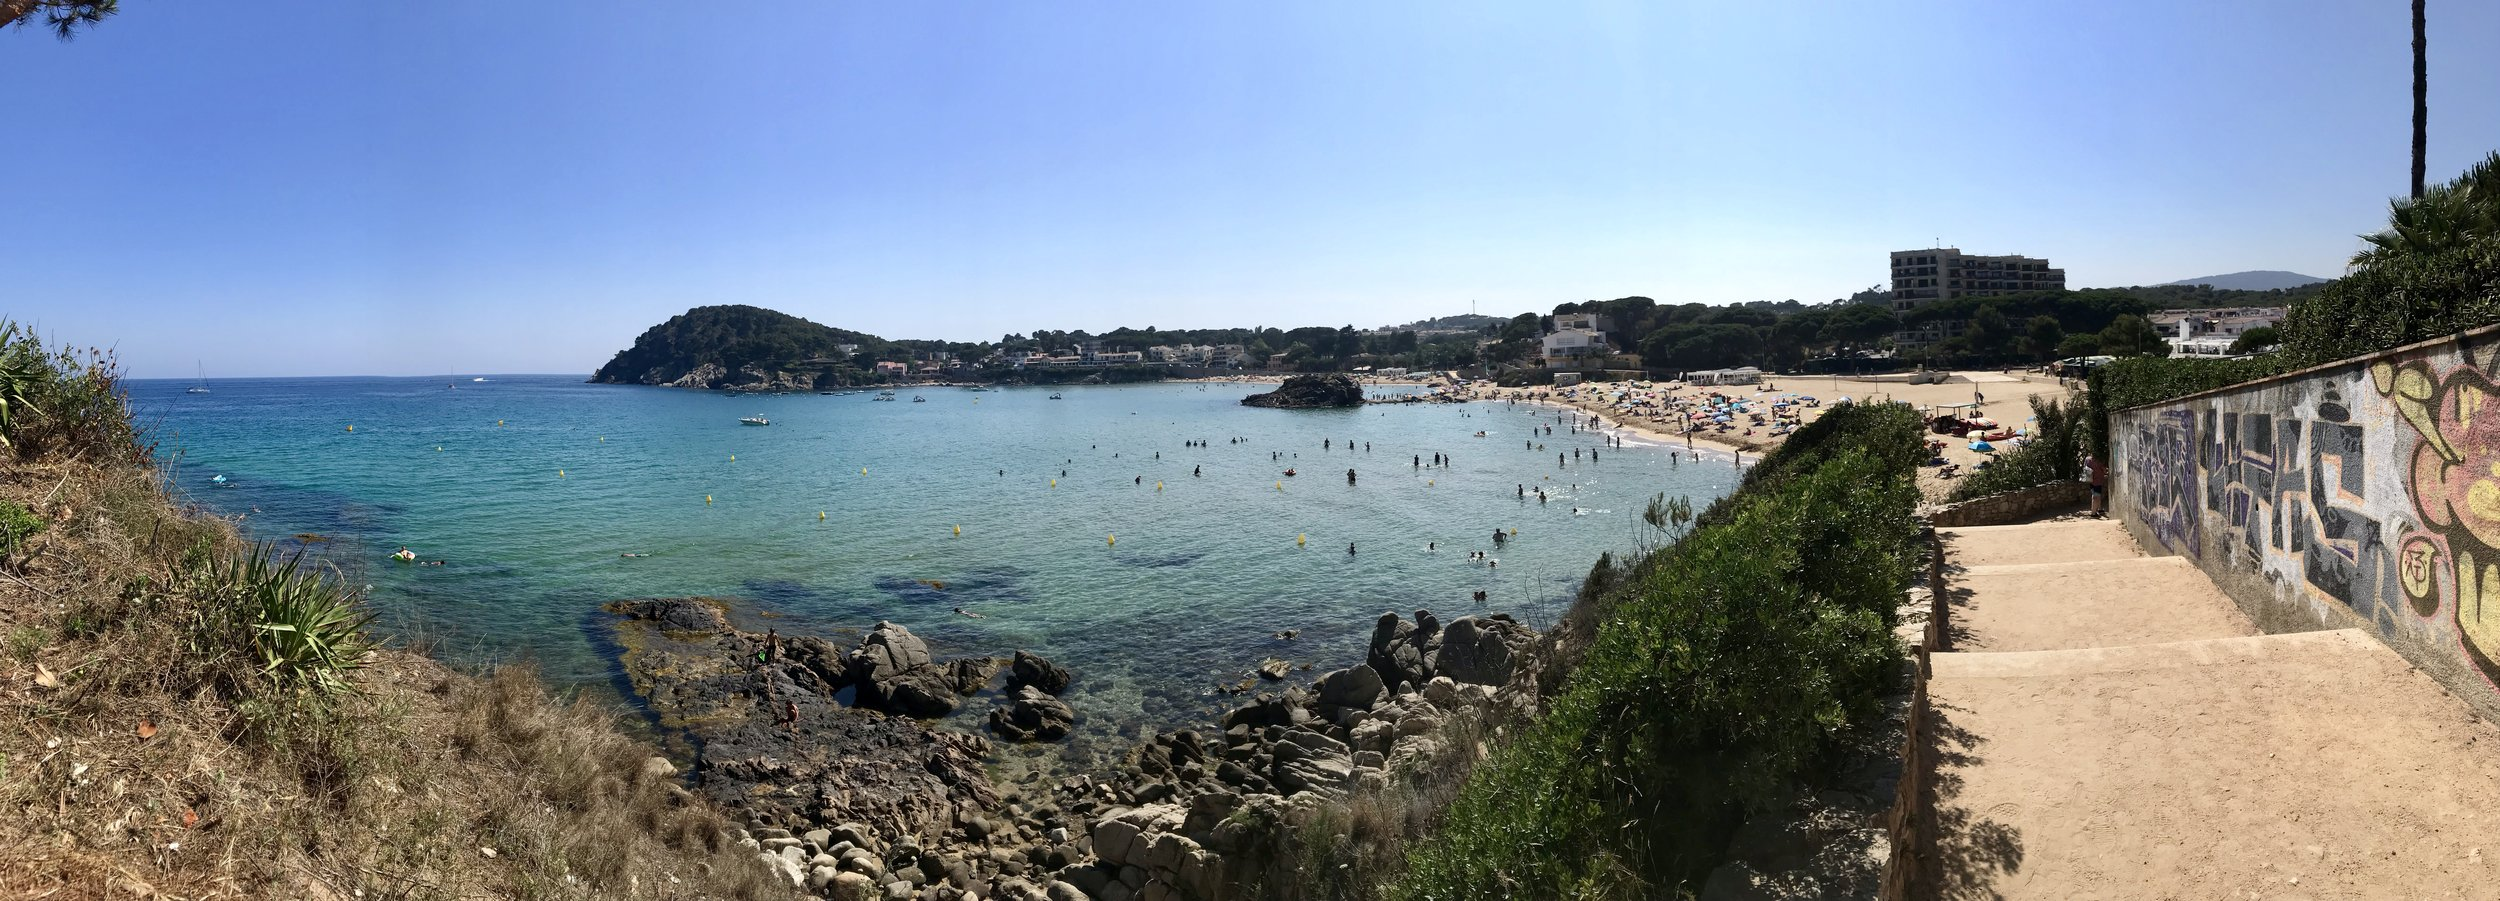 The walking trail along La Fosca beaches.